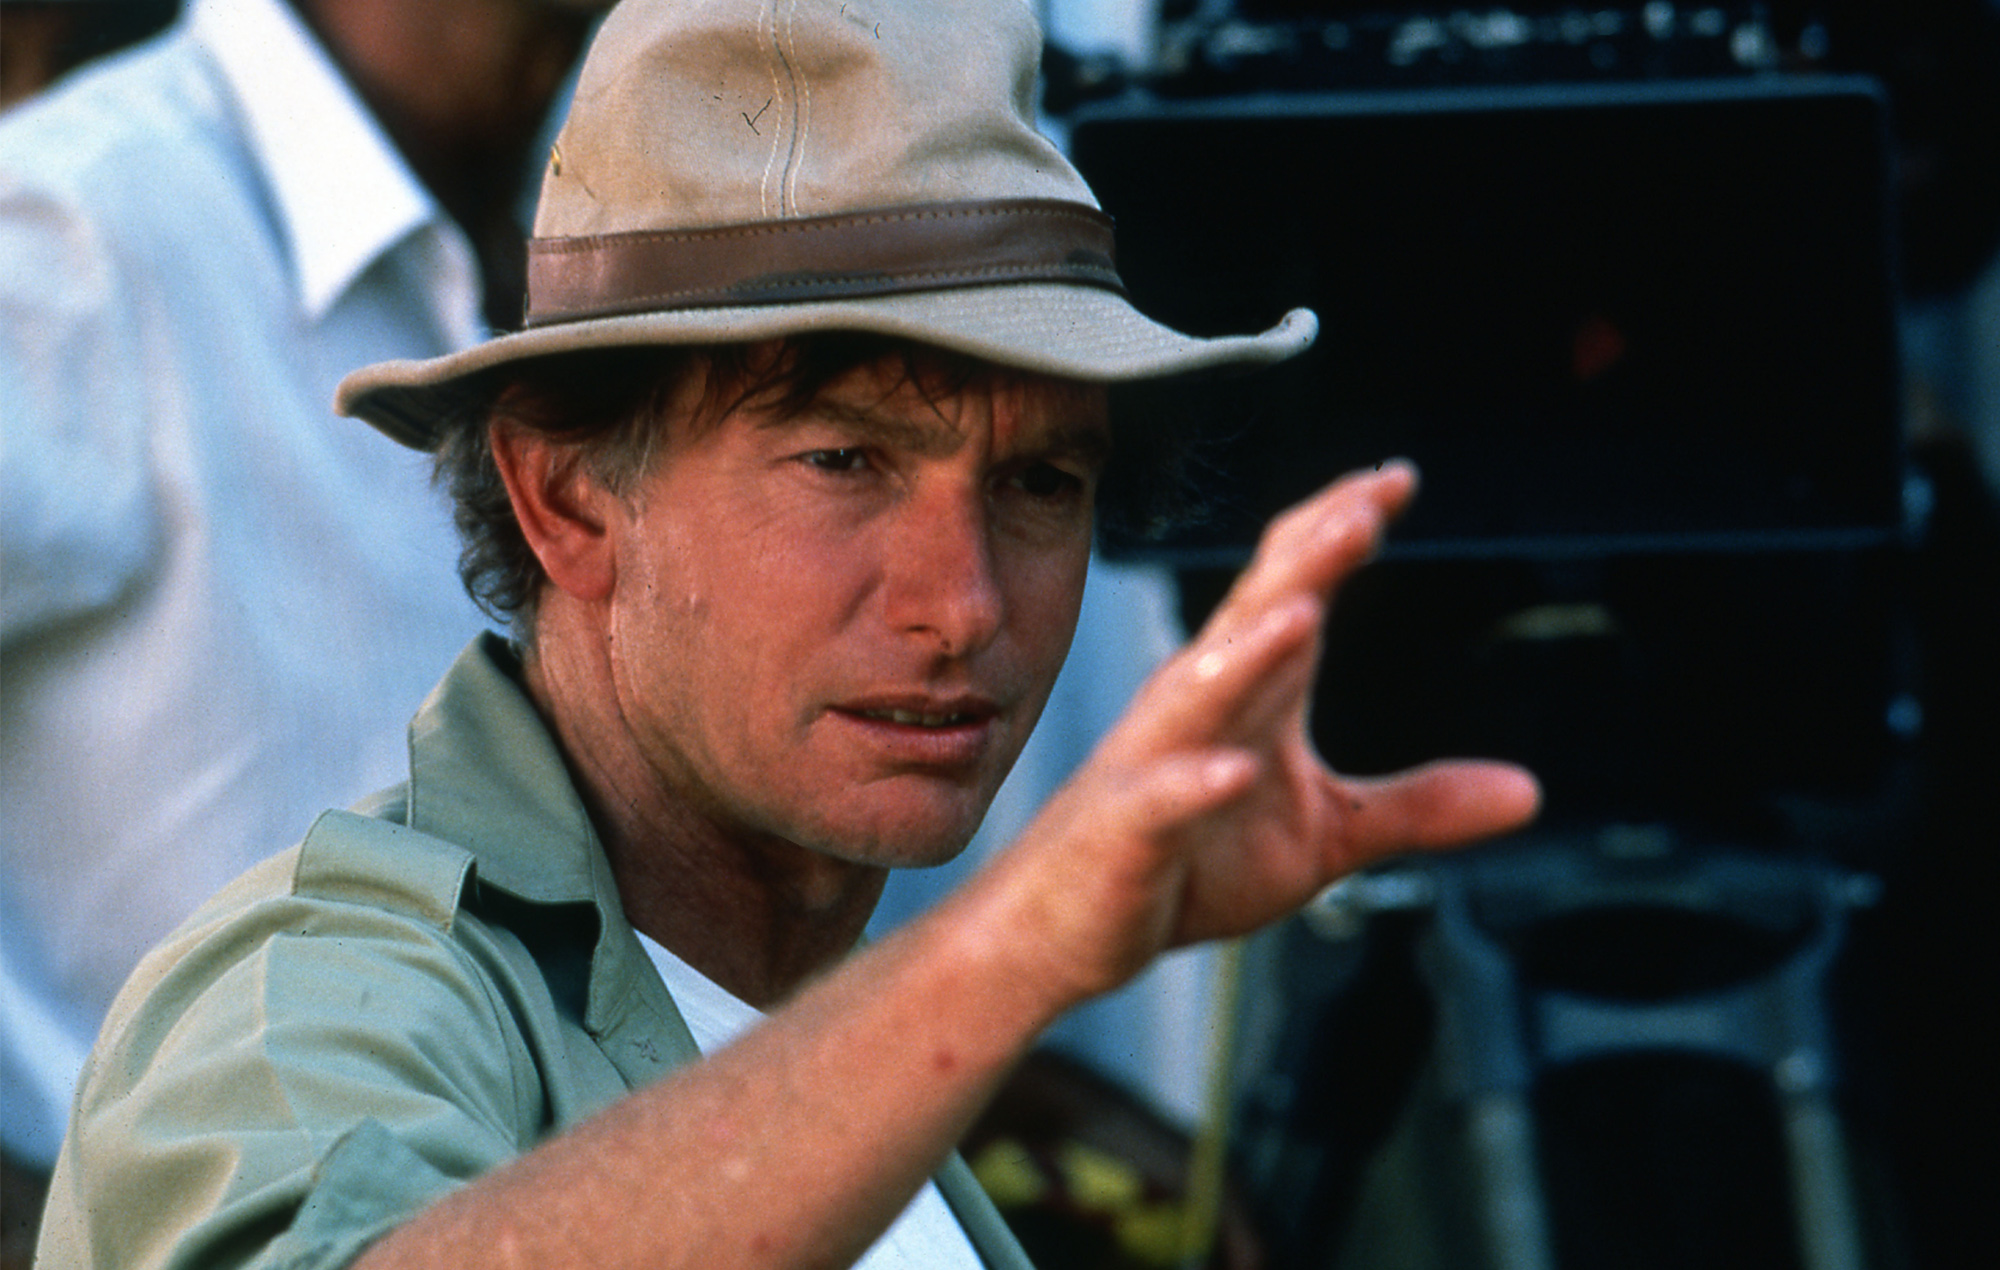 Peter Weir director movie films ranked Truman Show Master and Commander Dead Poets Society